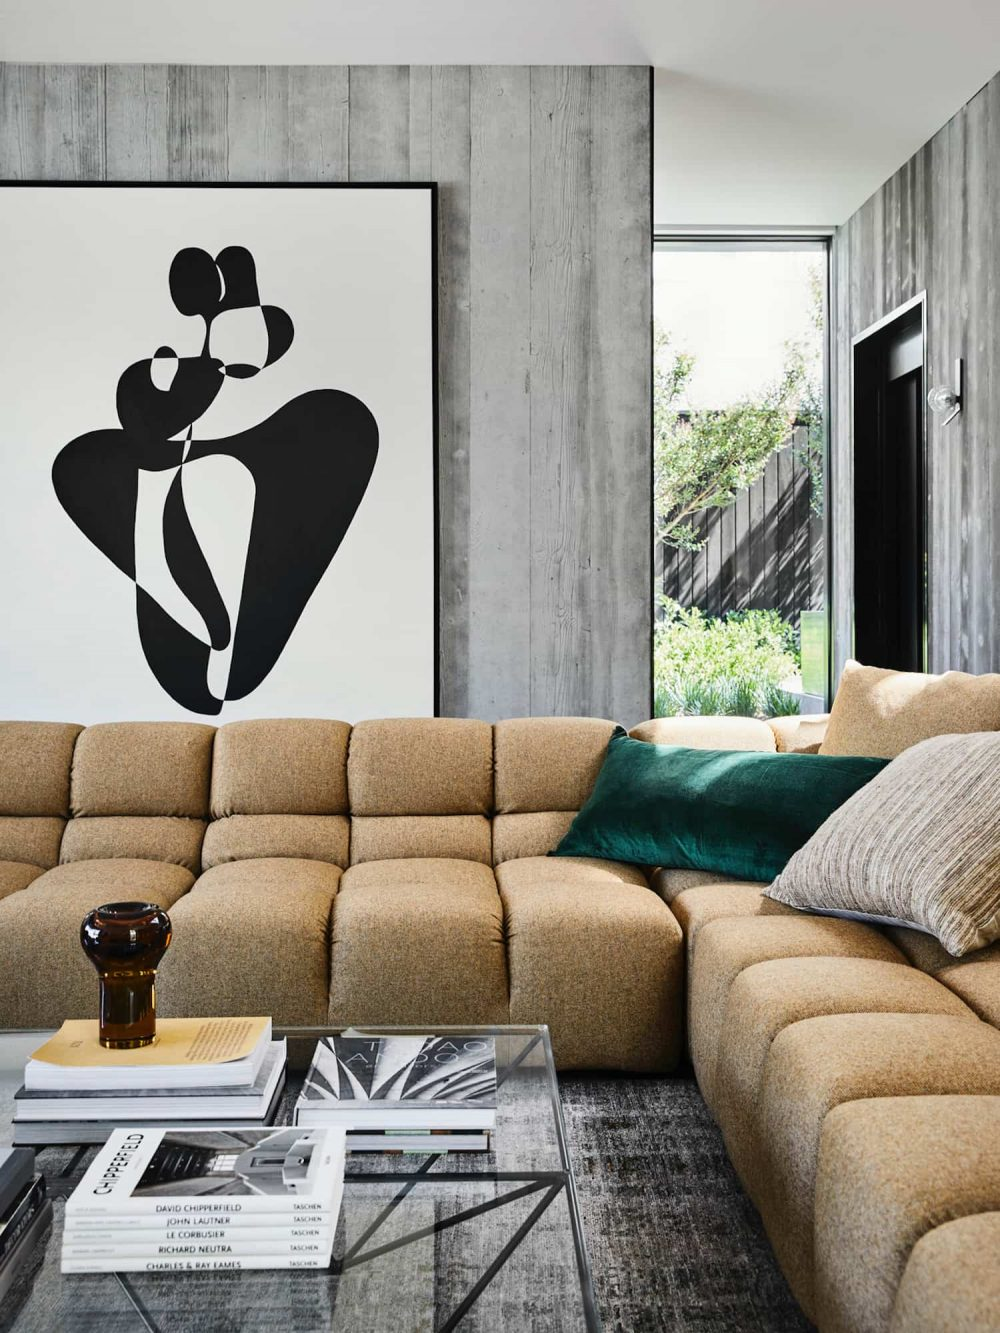 Modular Sofas: 7 Stunning Styles For All Spaces